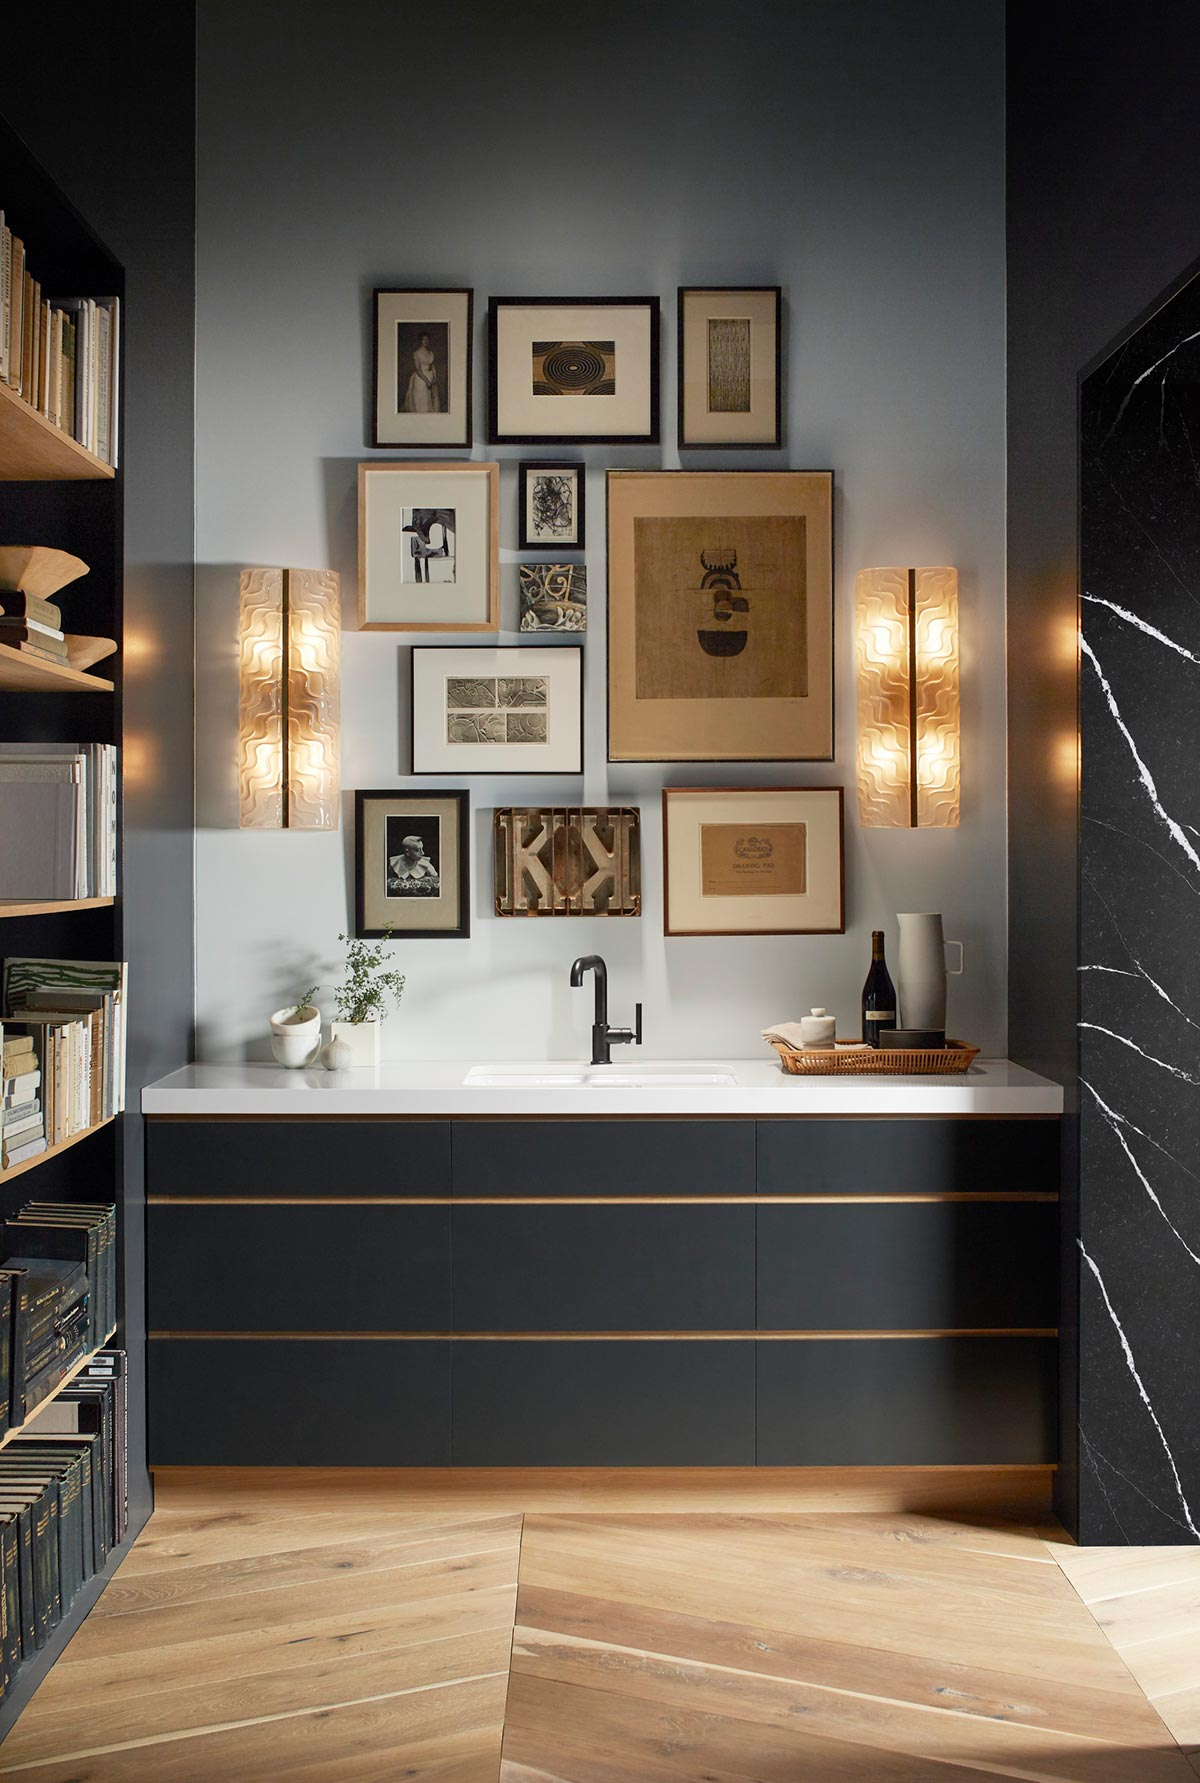 Riverby Bar Sink     Purist Faucet      When designing your space, create tension and interest with irregularity. Here, an asymmetrical collage of wall art balances the linear style of the countertop and bar.